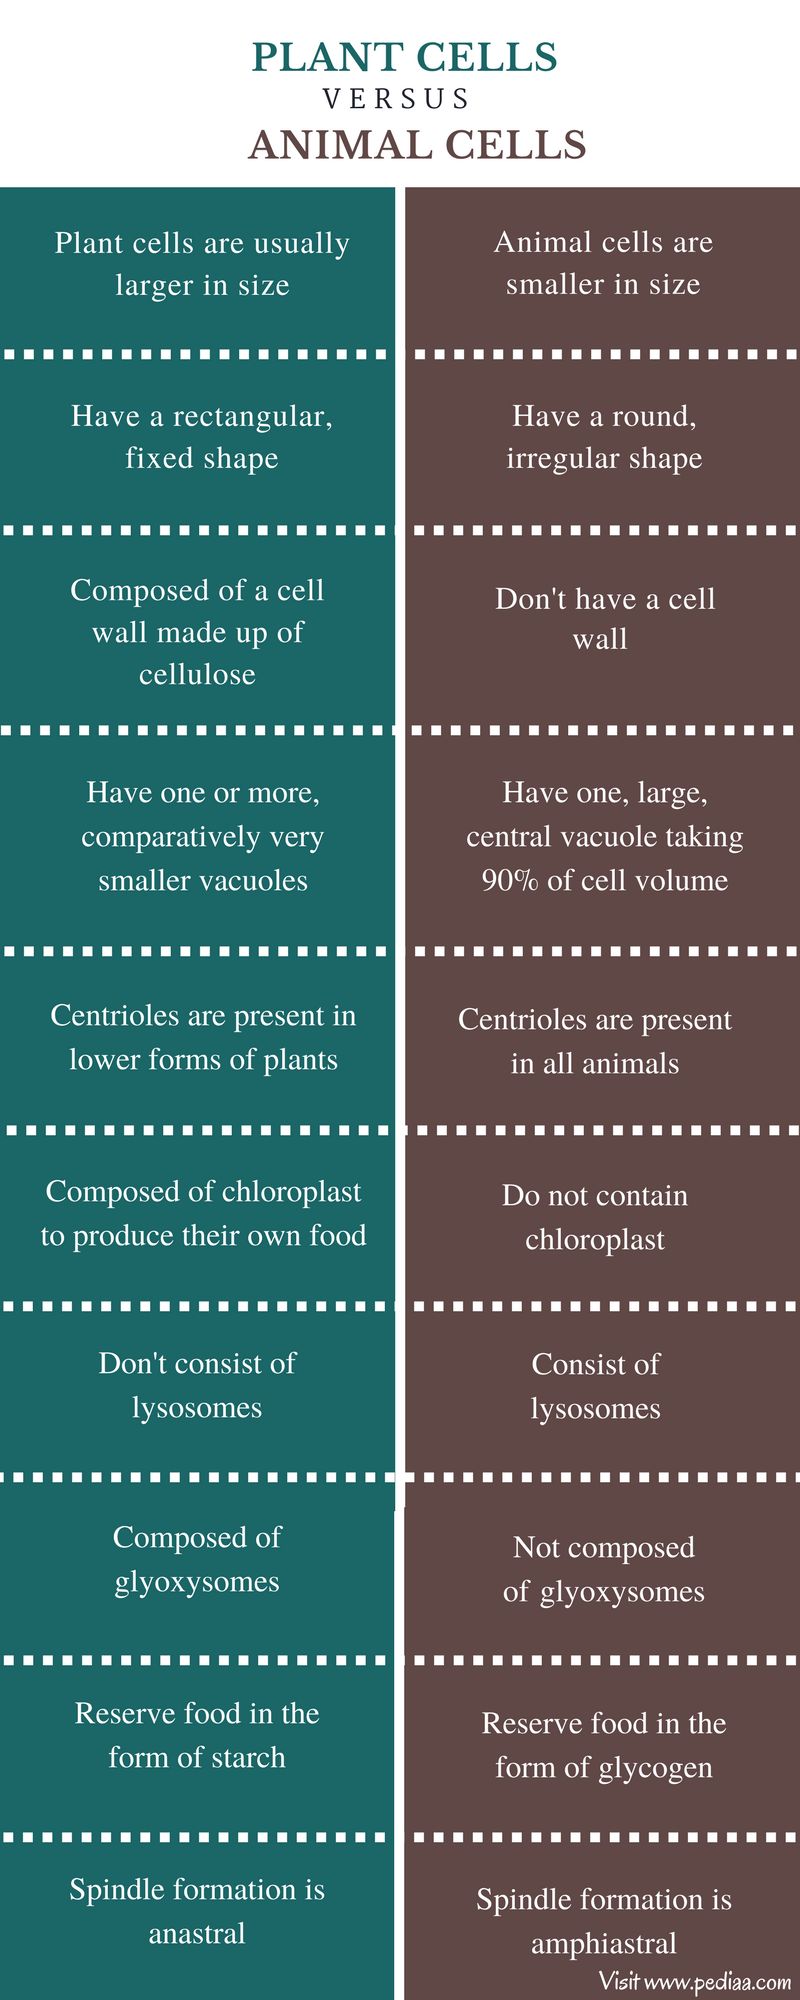 Difference Between Plant and Animal Cells - Comparison Summary